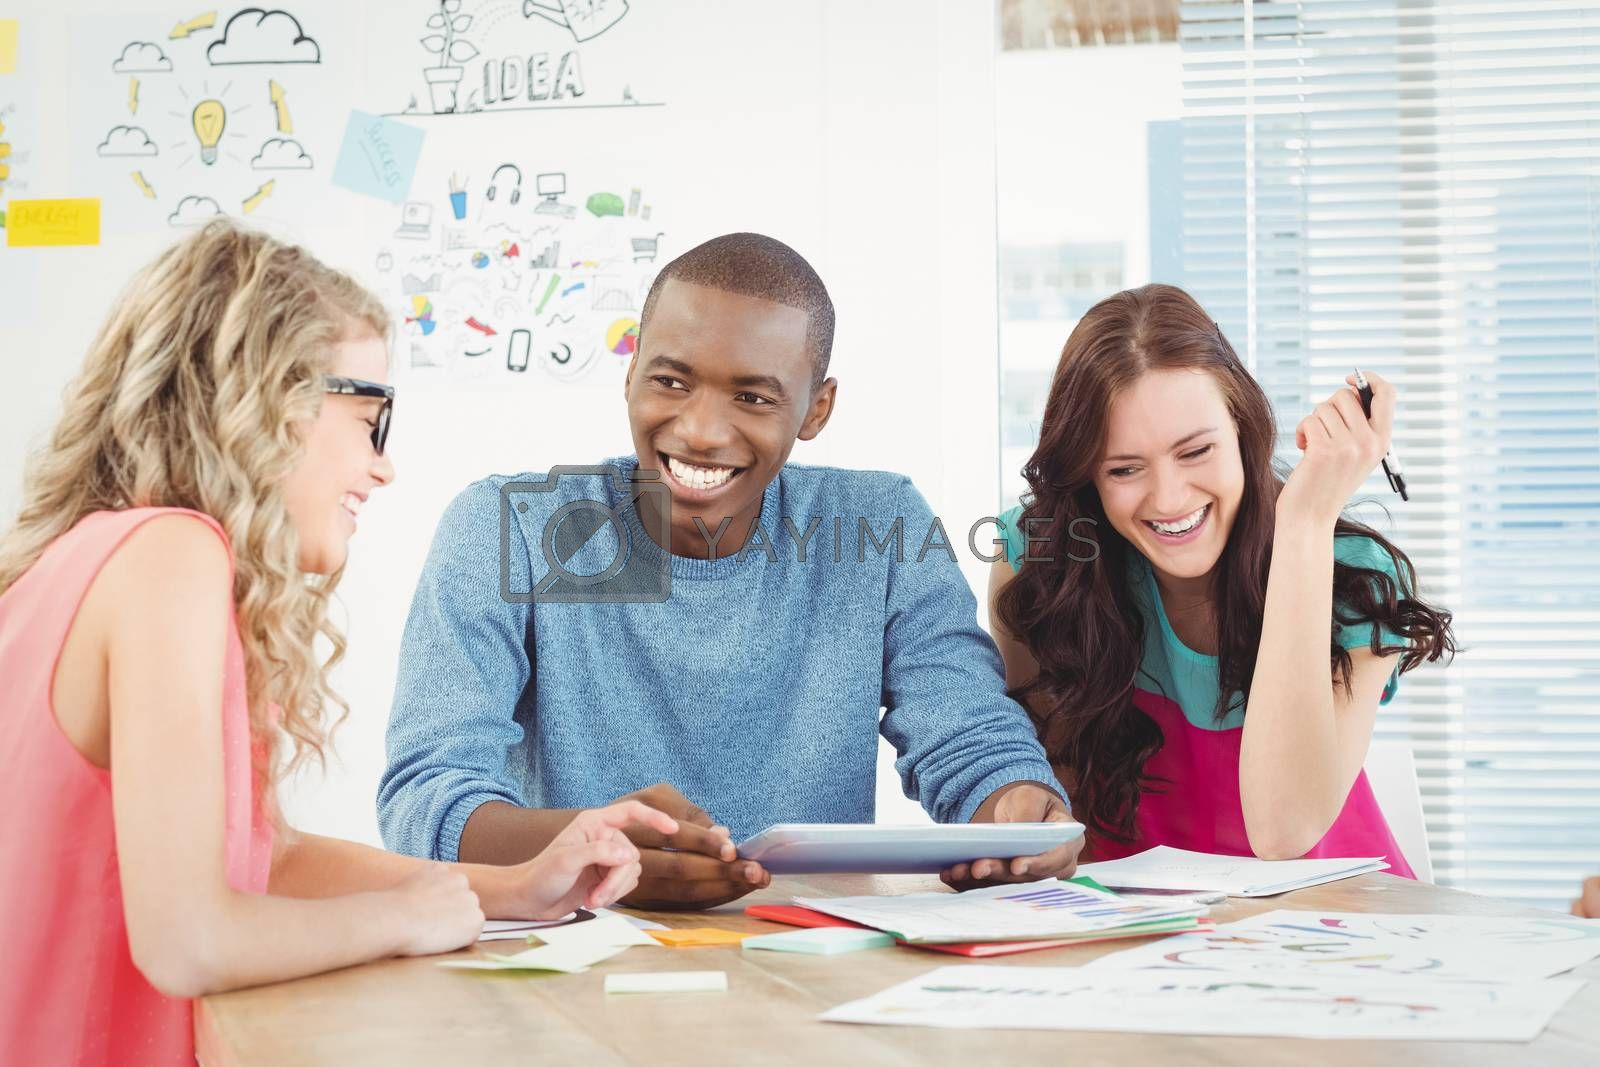 Smiling business professionals using digital tablet at desk in creative office